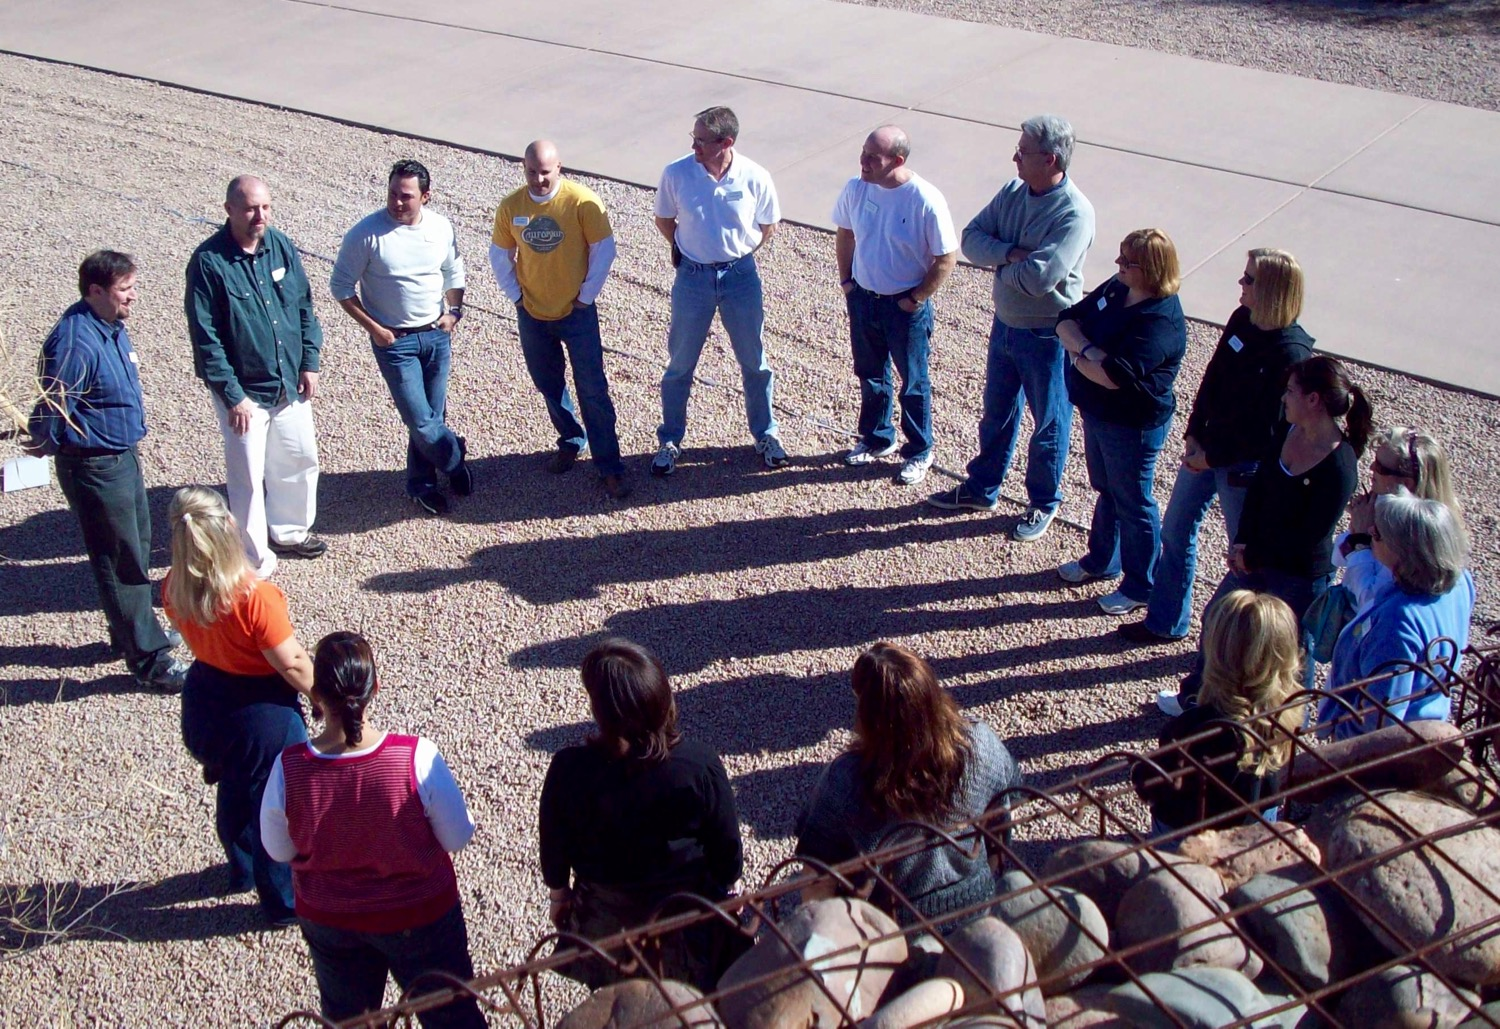 corporate-team-building-activities-phoenix-arizona.jpg